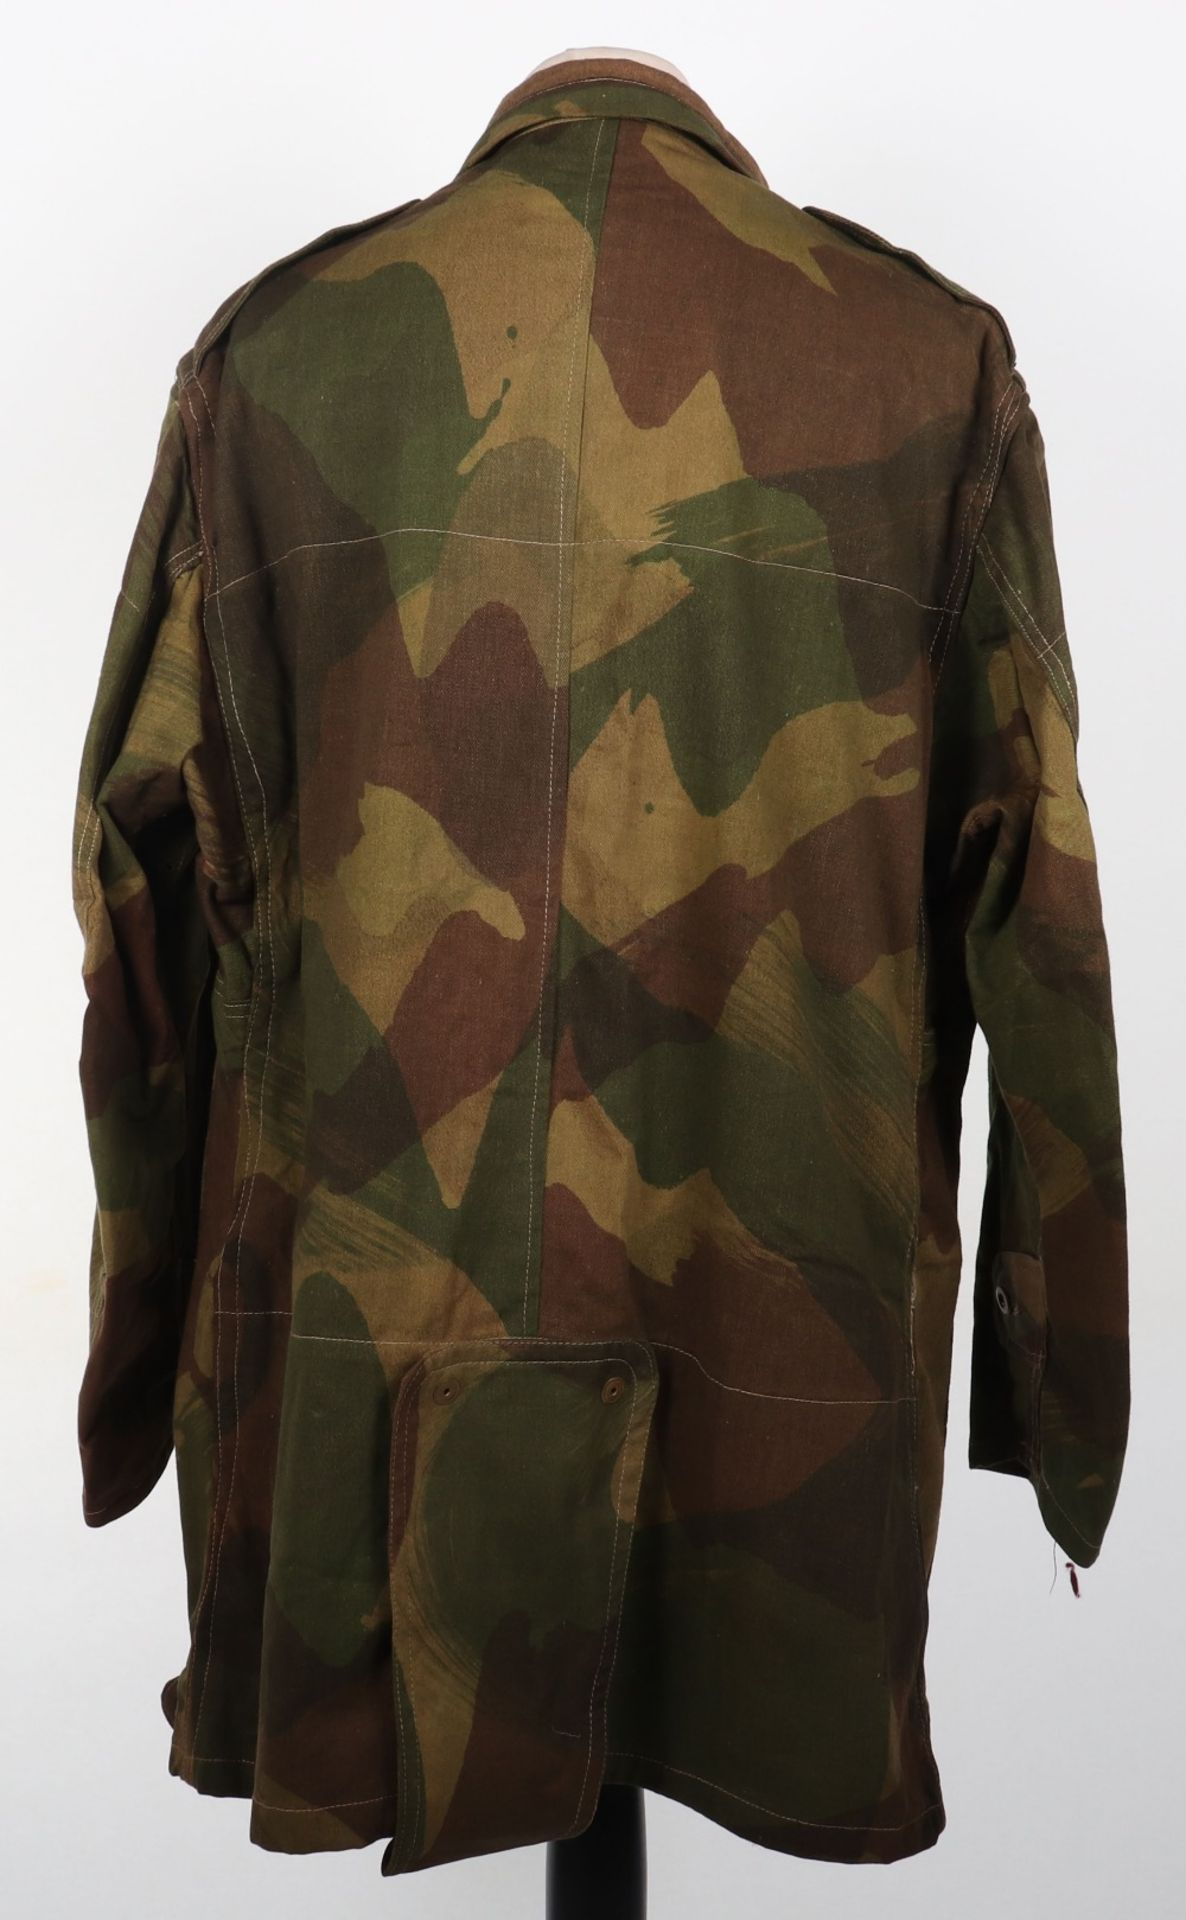 Mint Condition Large Size Airborne Forces Denison Smock - Image 9 of 17